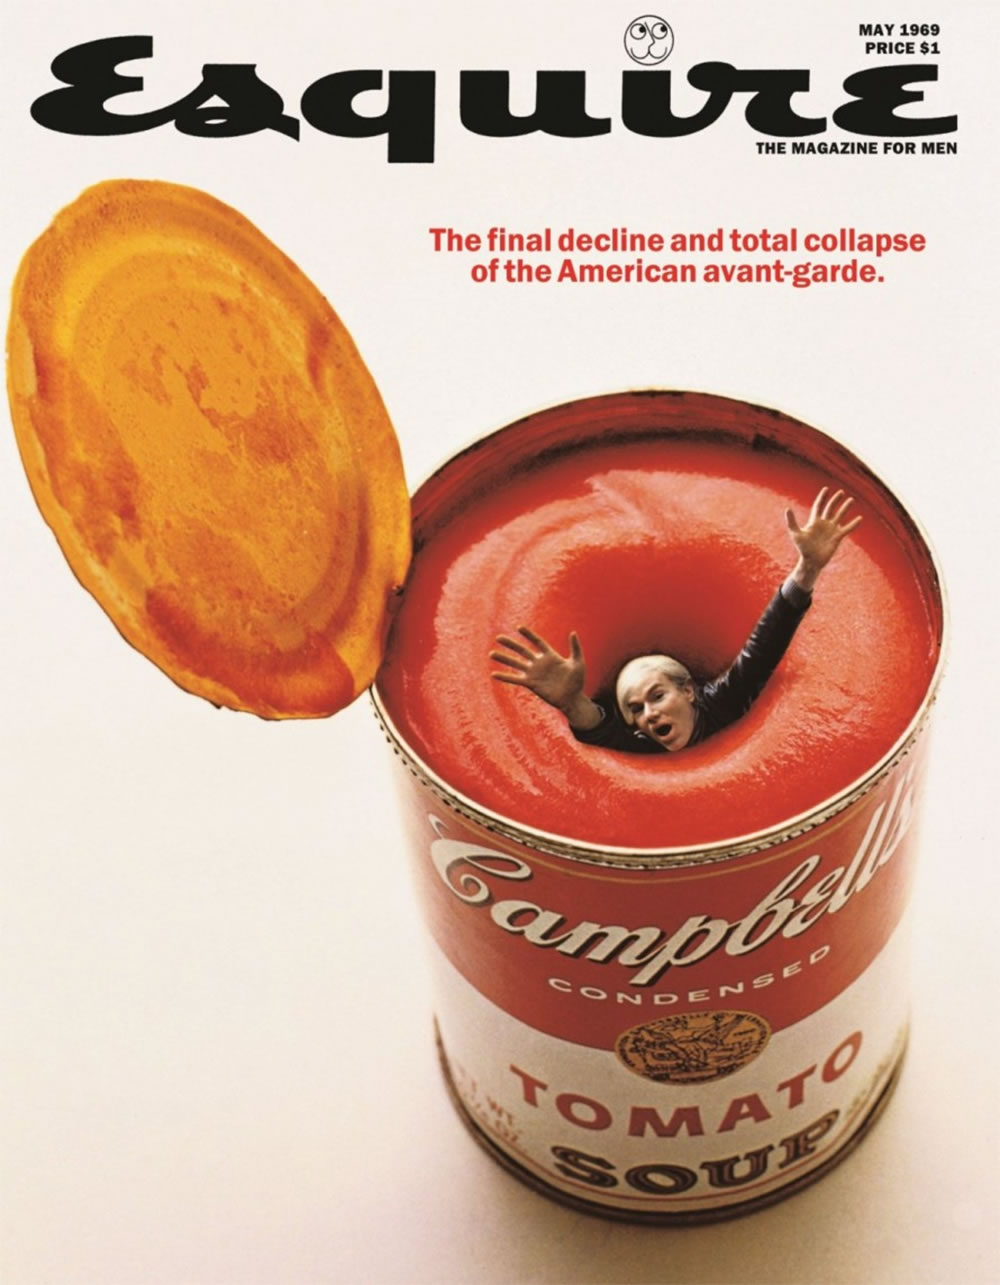 warhol on esquire mag cover, suicide soup